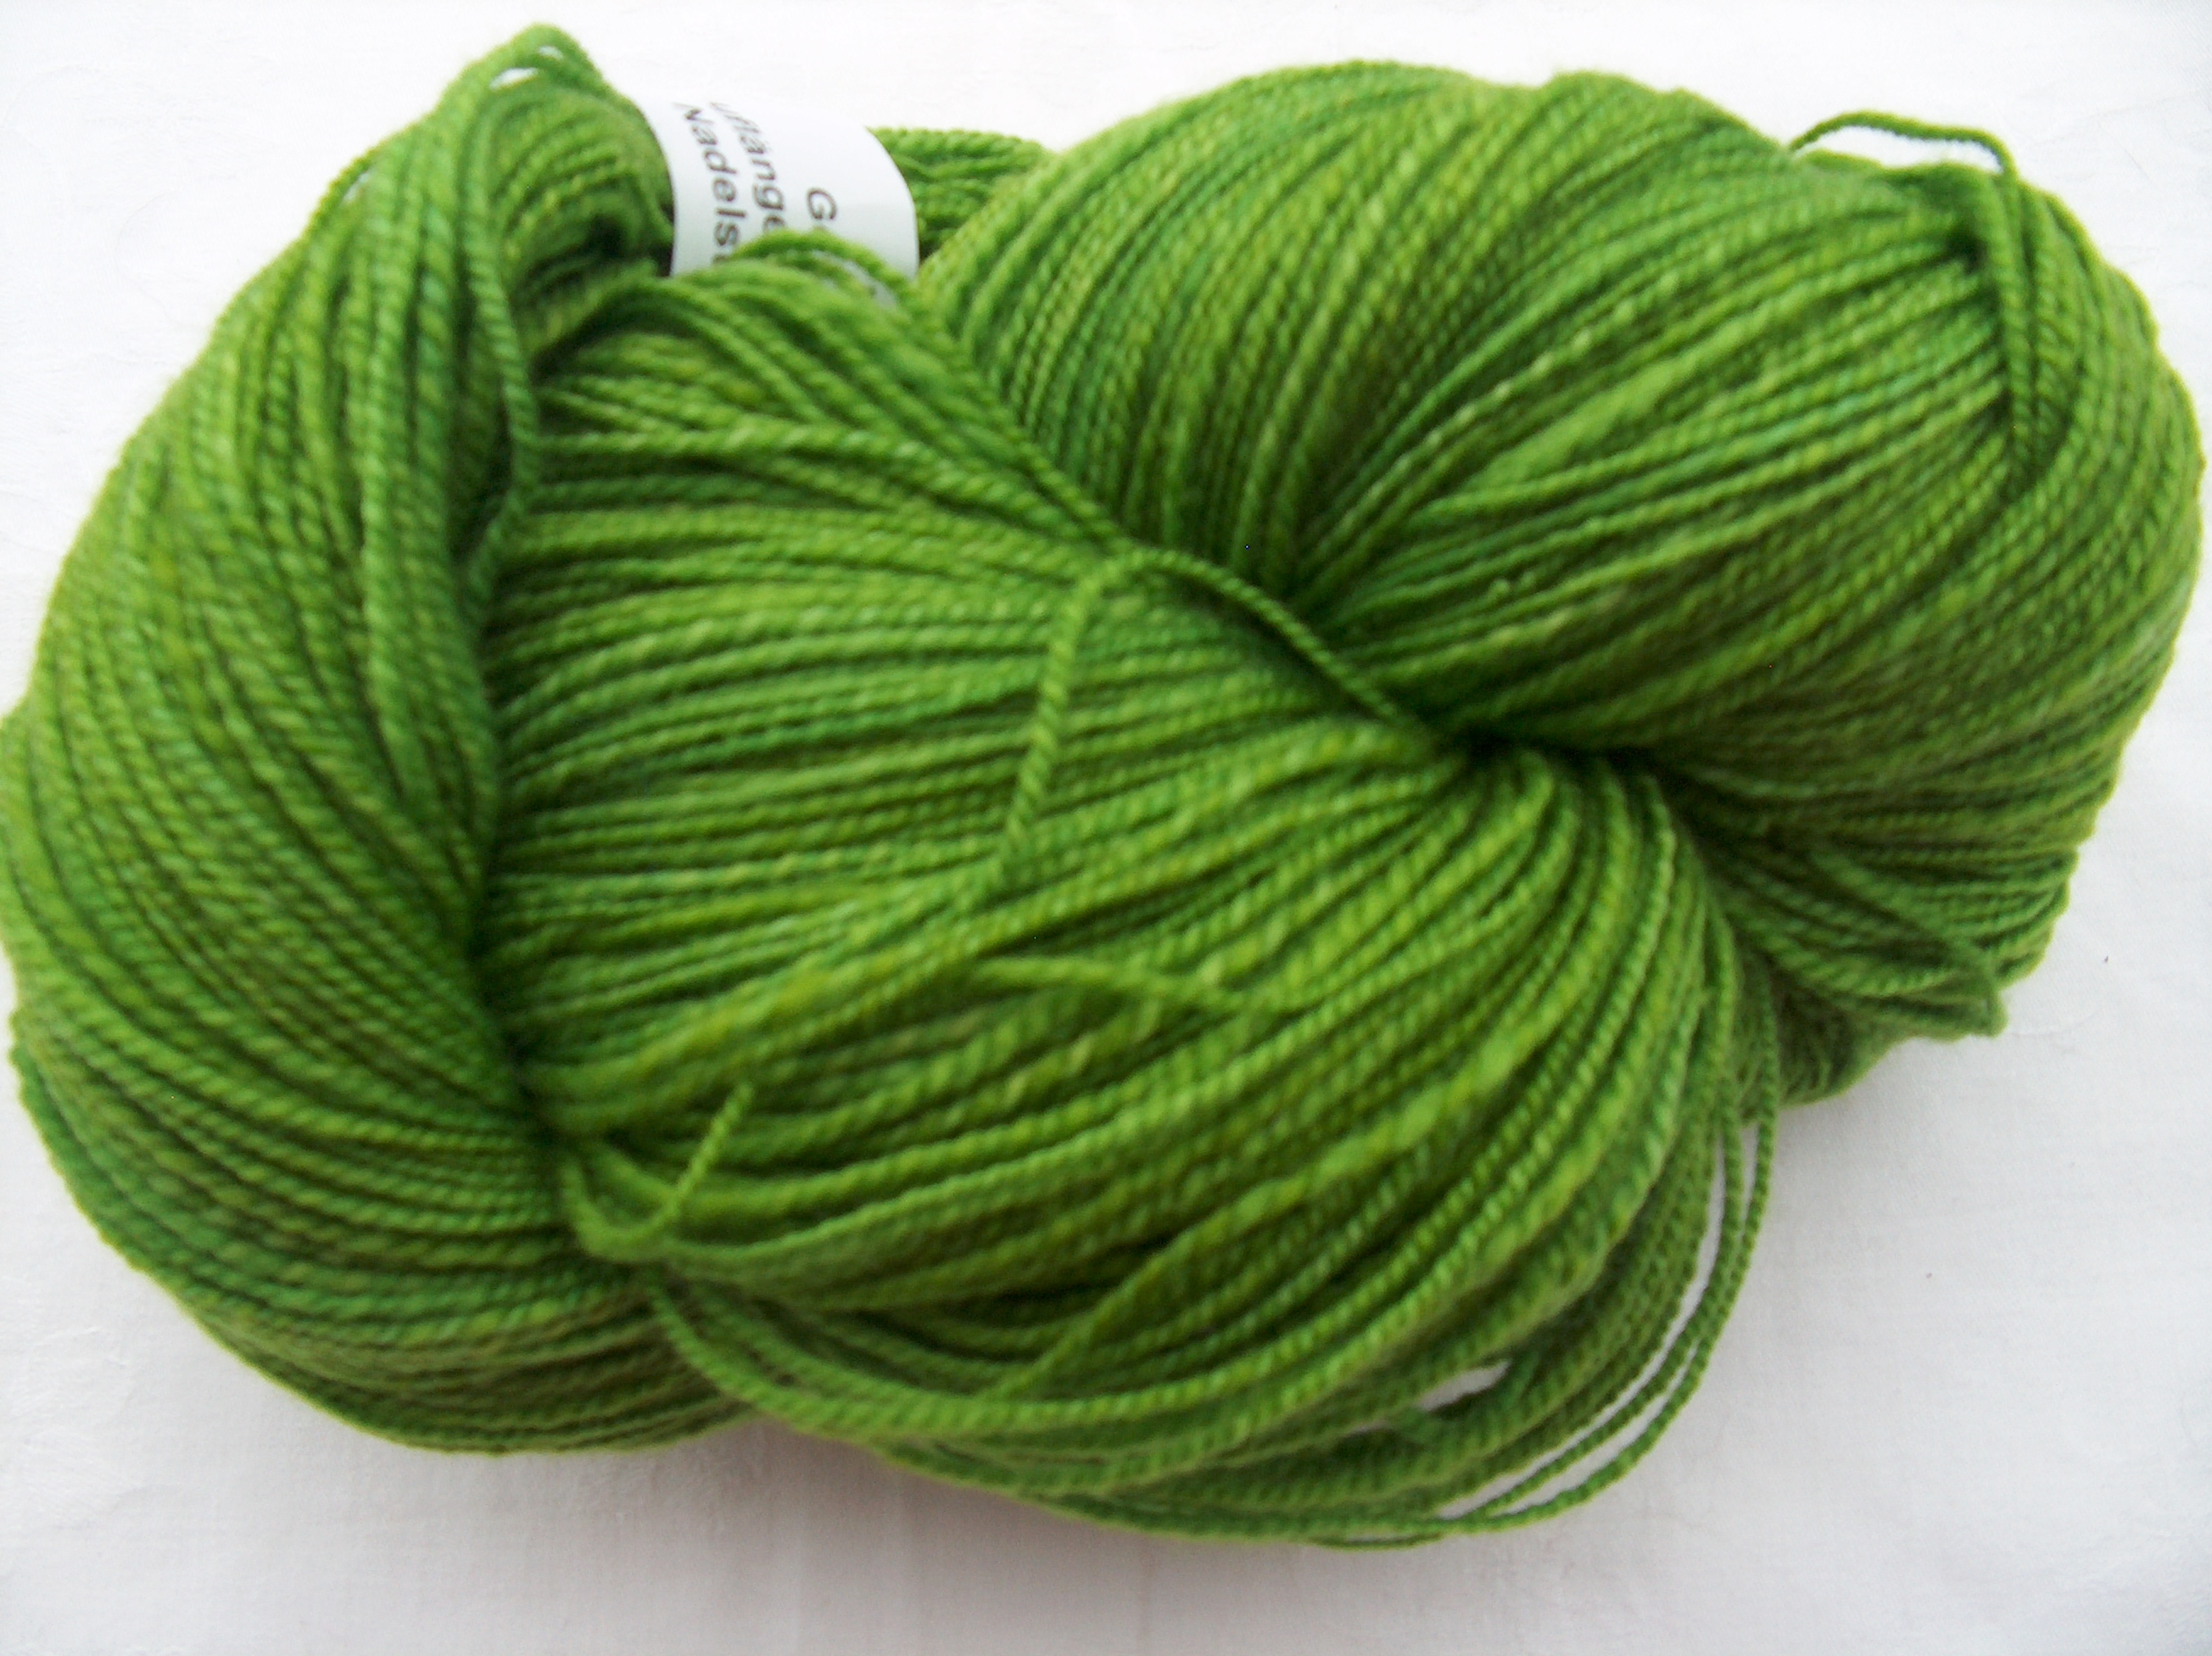 Superwash-Merino-Wolle in Grüntönen ca. 150g